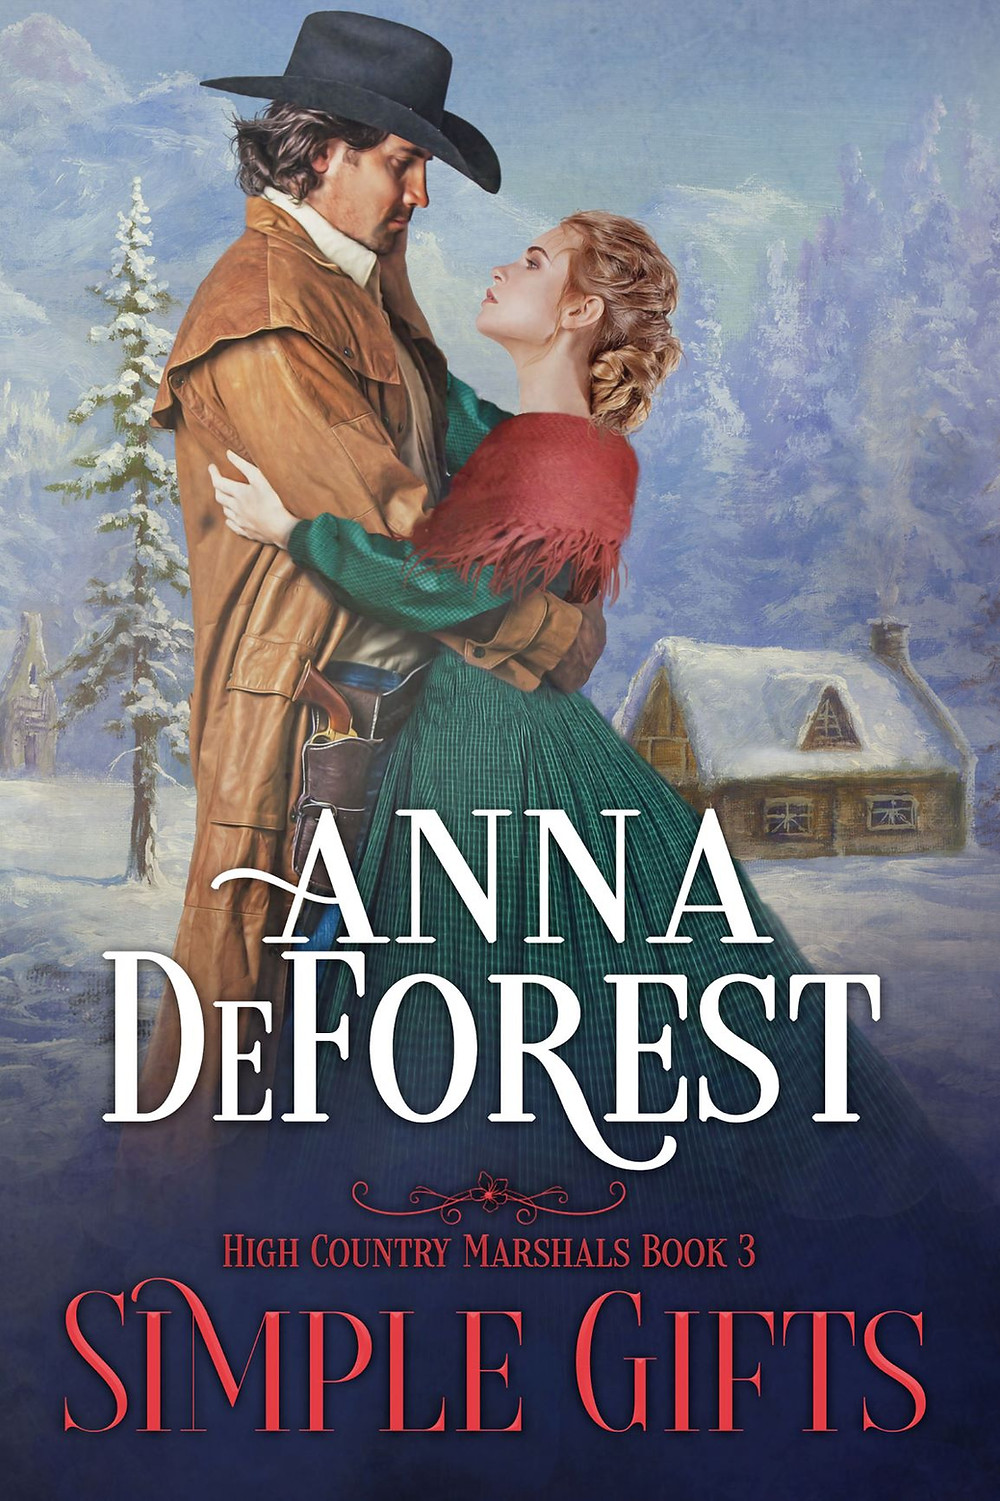 Simple Gifts by Anna DeForest